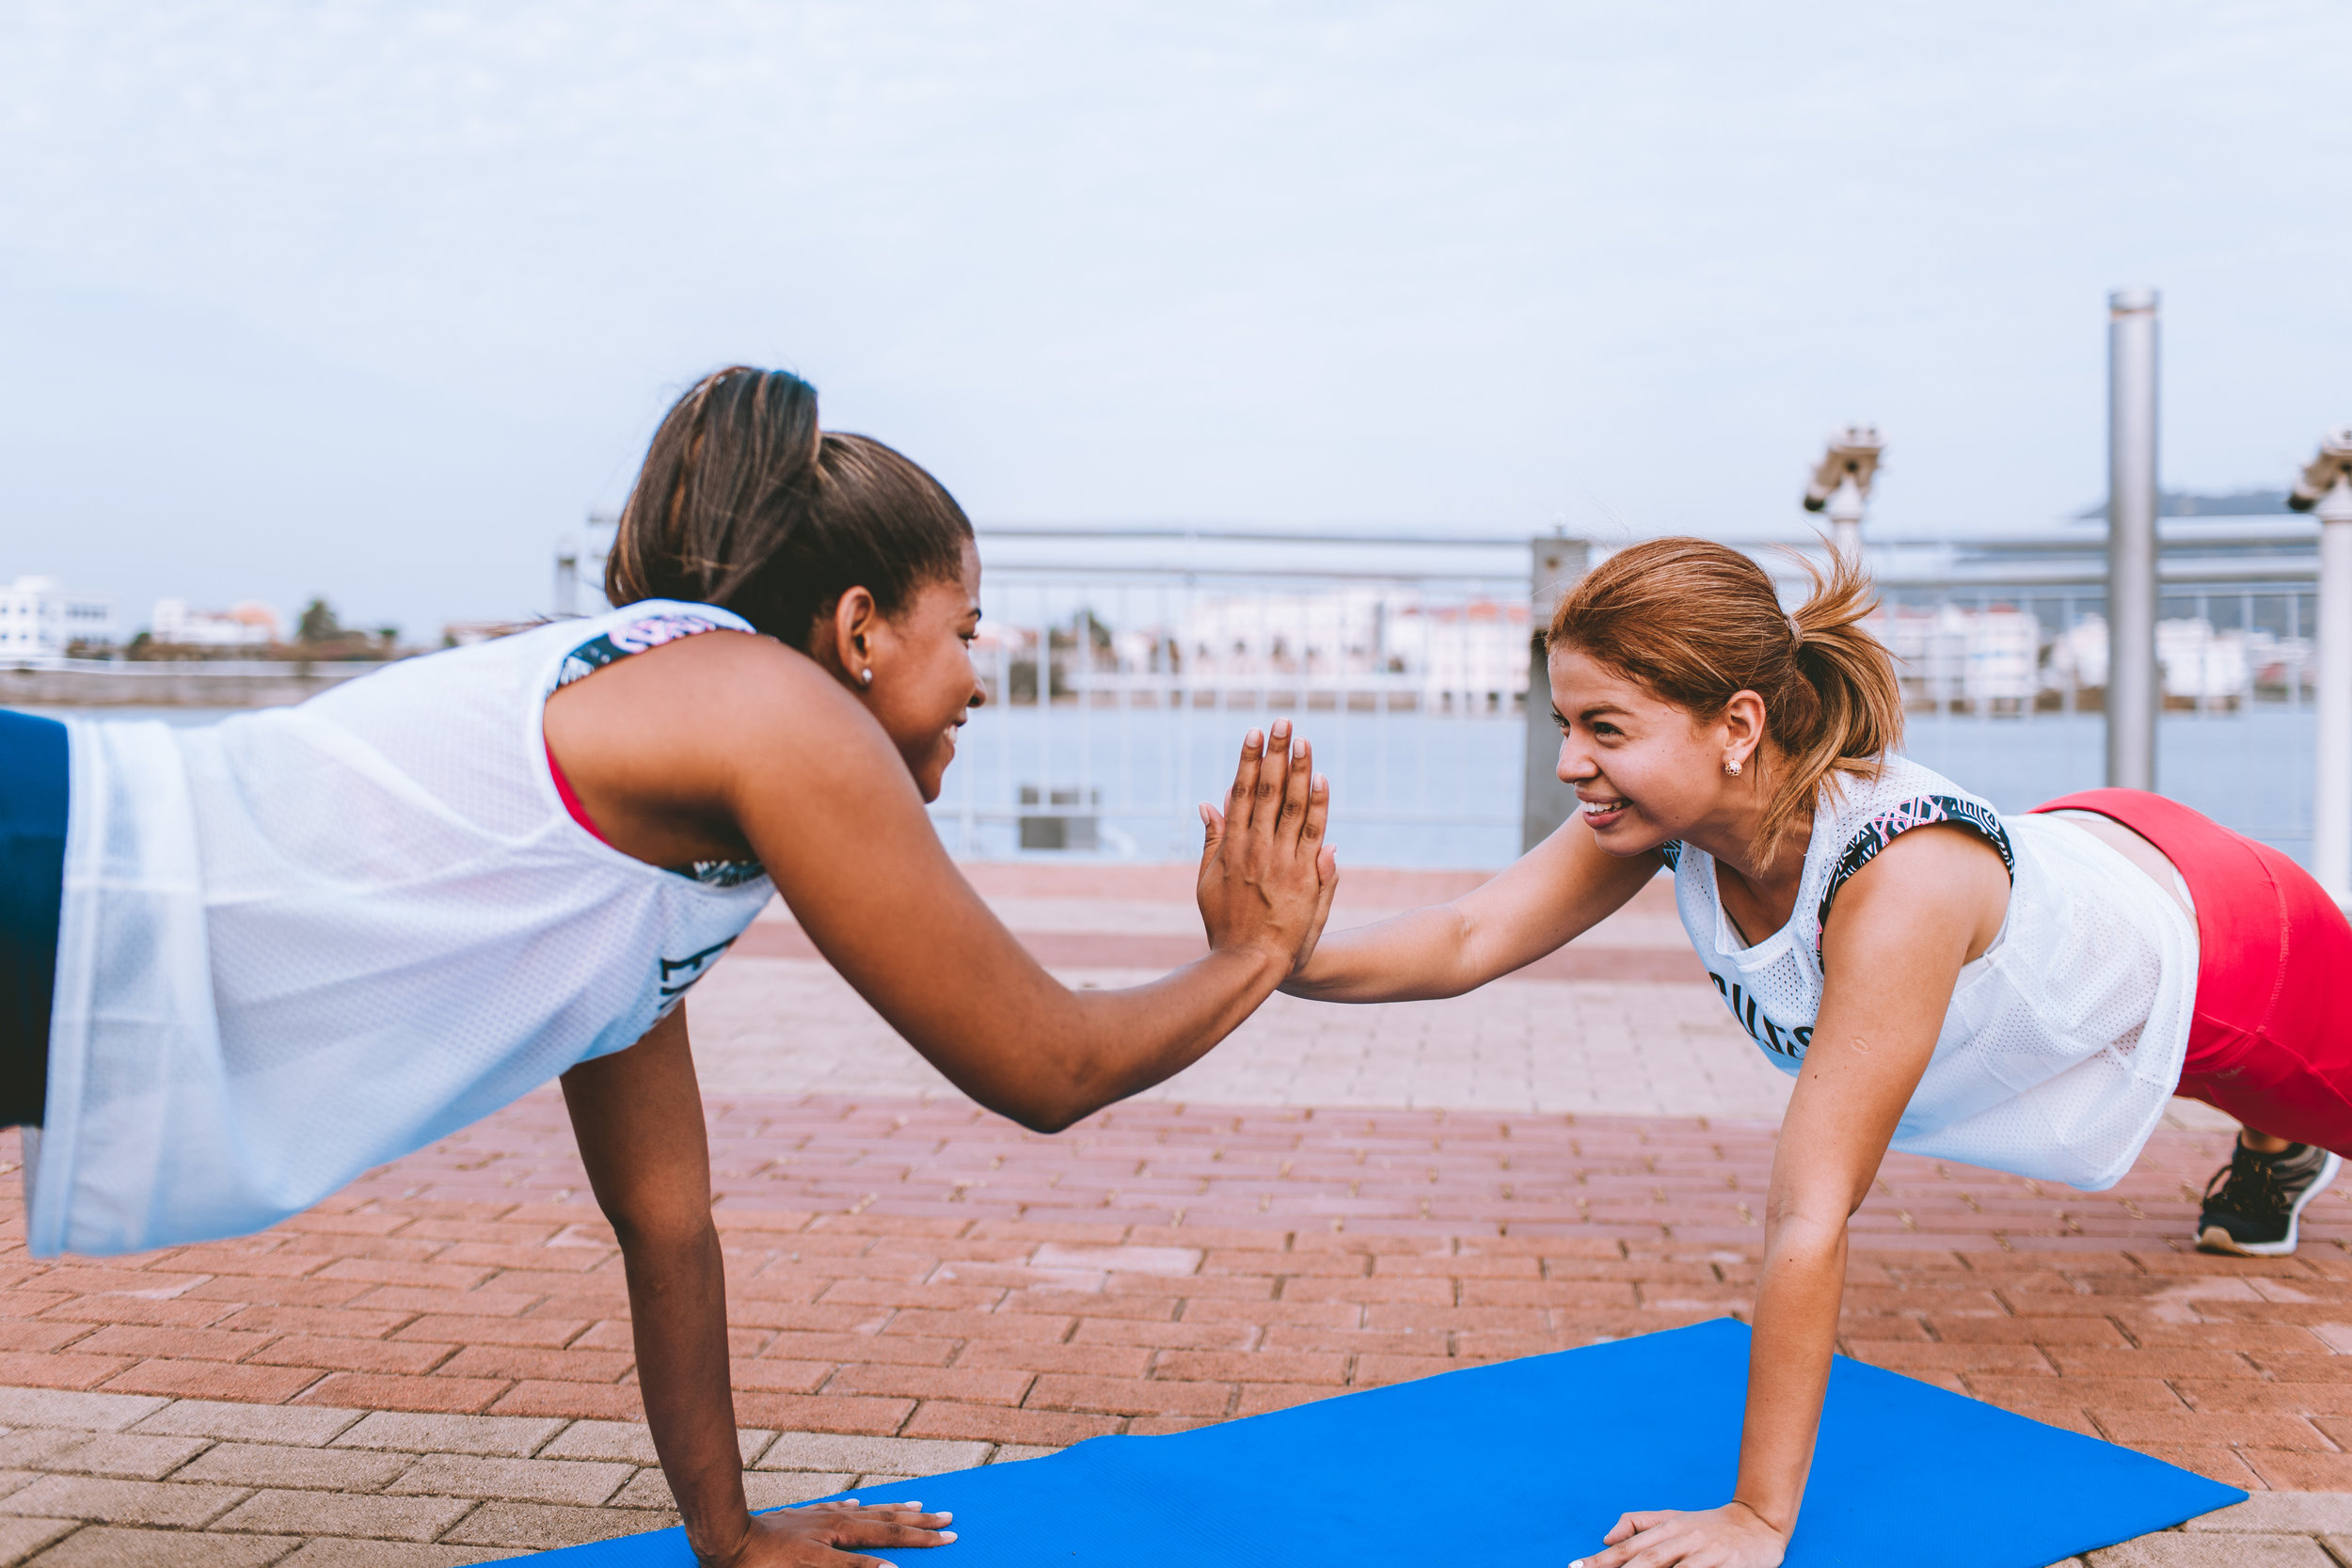 Tips for building a healthy relationship with exercise